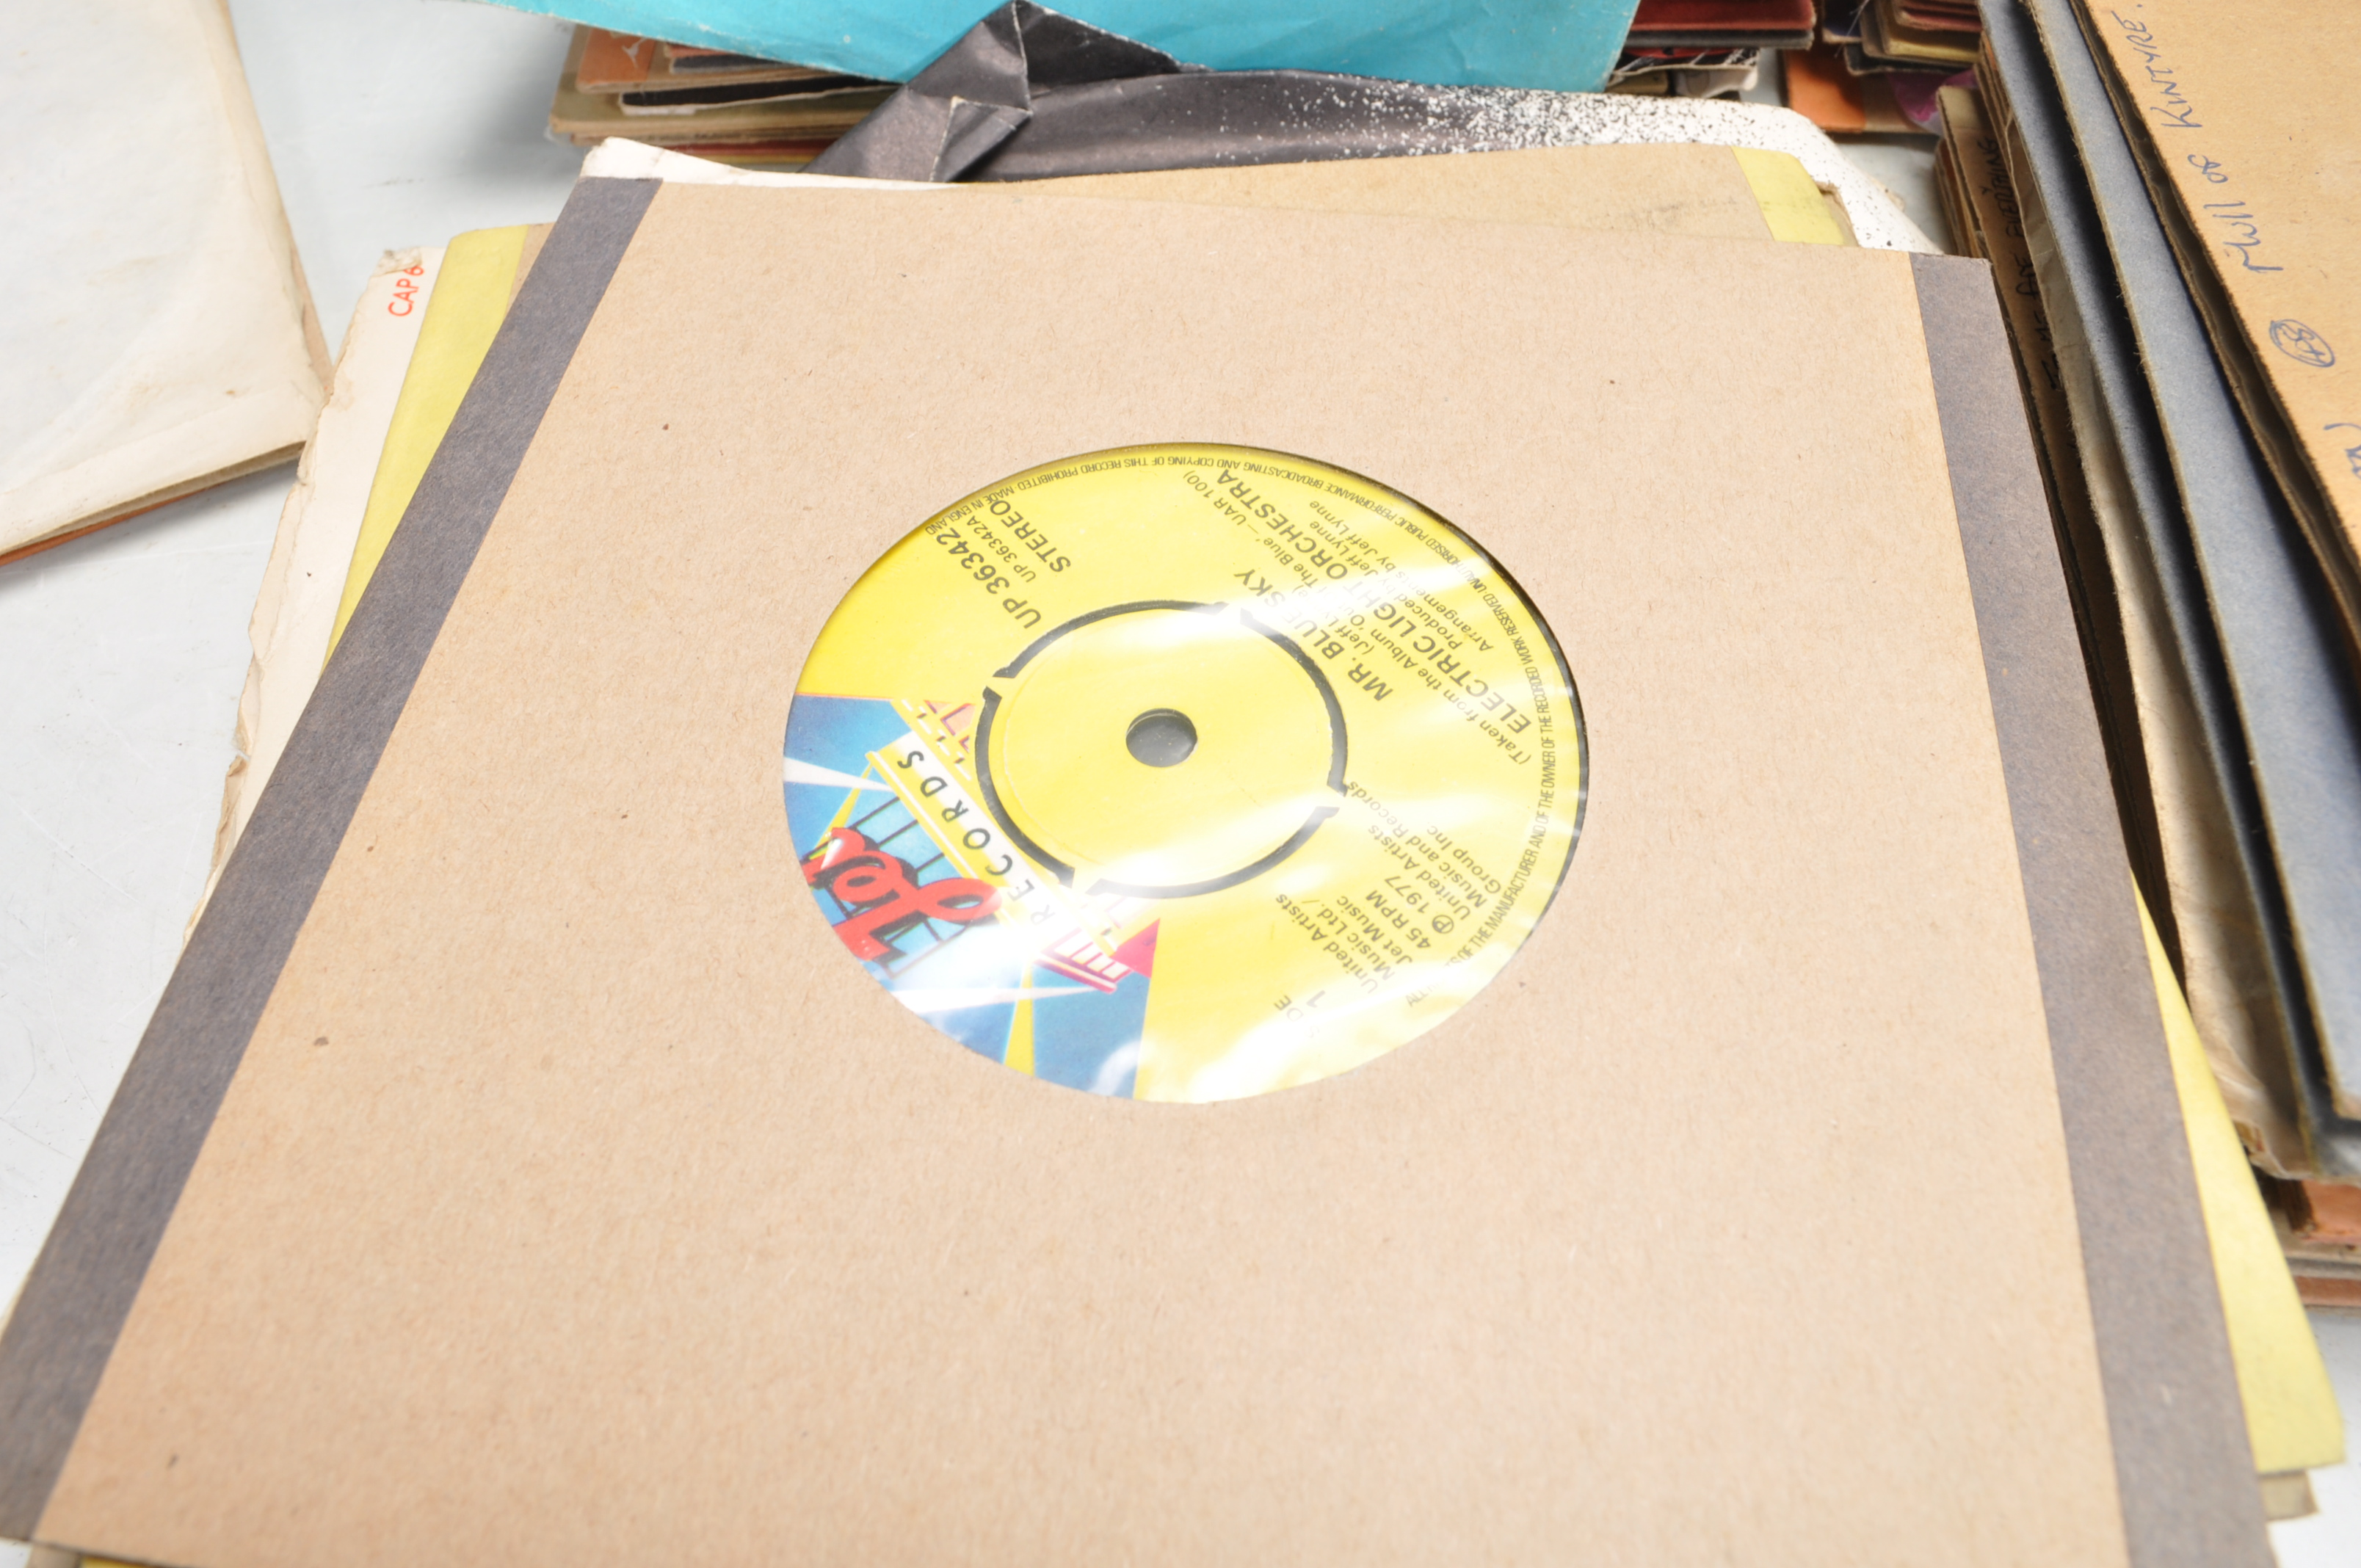 """LARGE COLLECTION OF VINTAGE VINYL 45RPM 7"""" SINGLES - Image 4 of 9"""